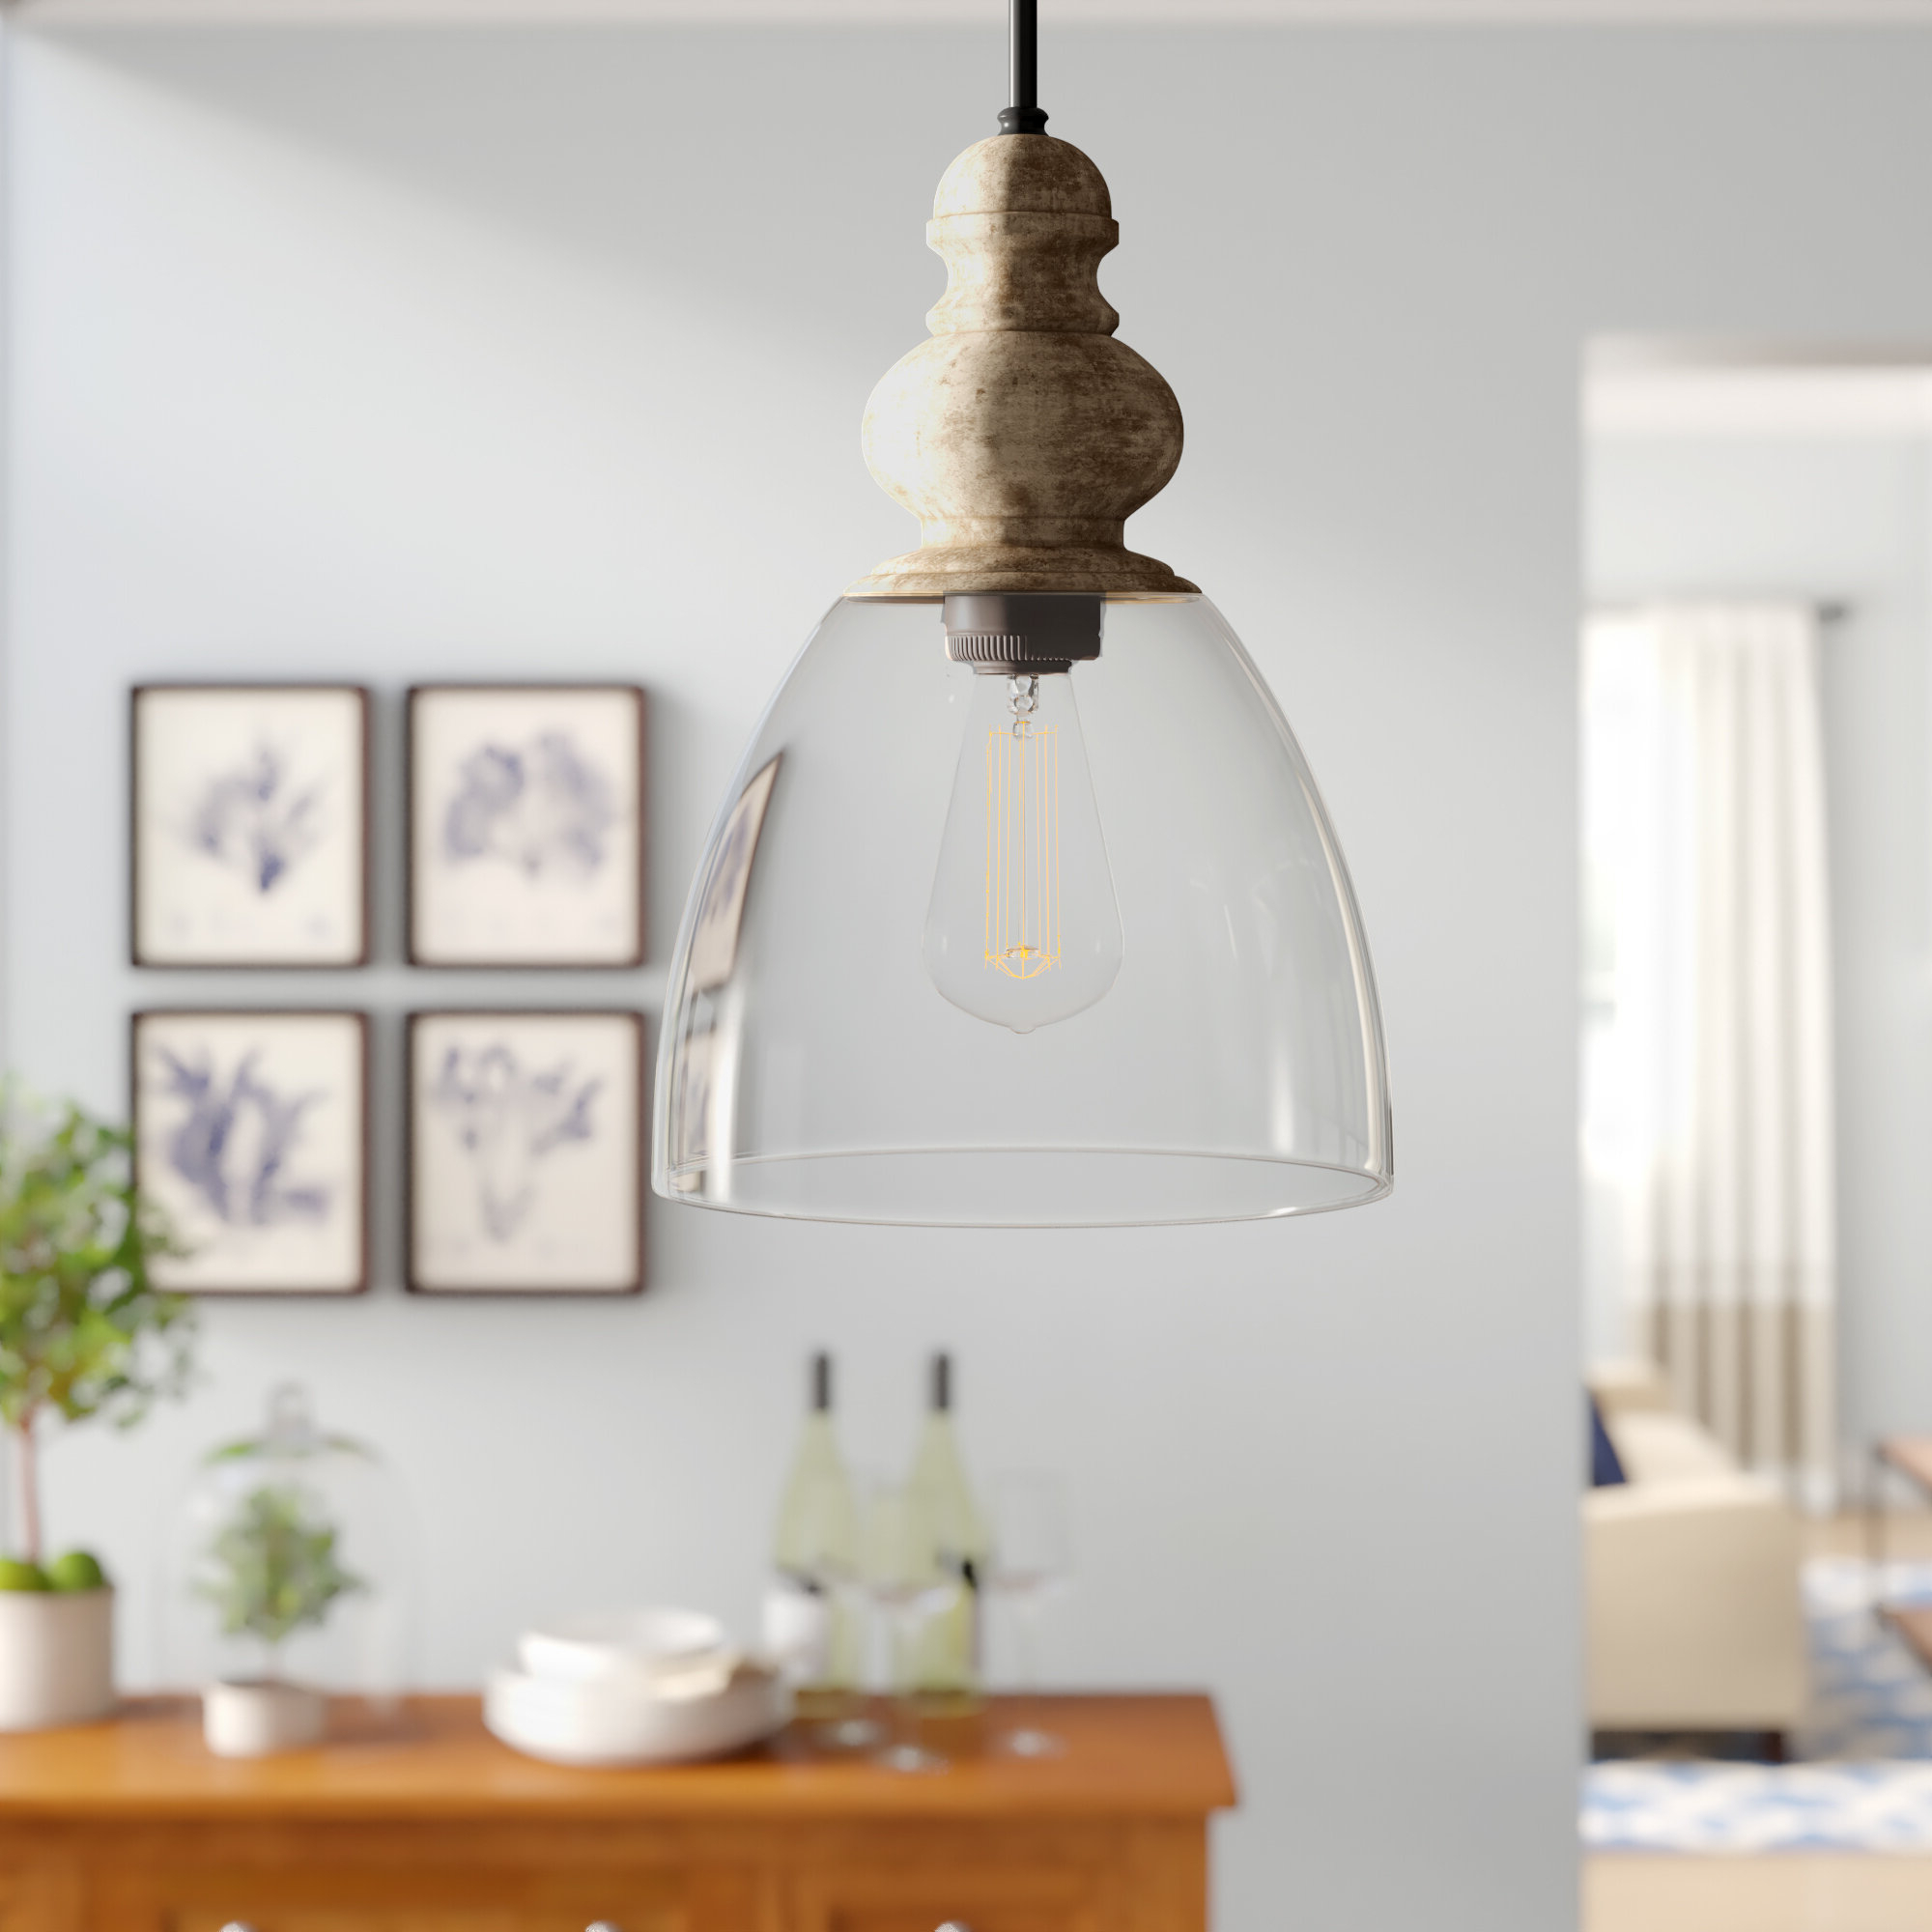 Favorite Wentzville 1 Light Single Bell Pendants Regarding Laurel Foundry Modern Farmhouse Lemelle 1 Light Single Bell Pendant (Gallery 19 of 20)